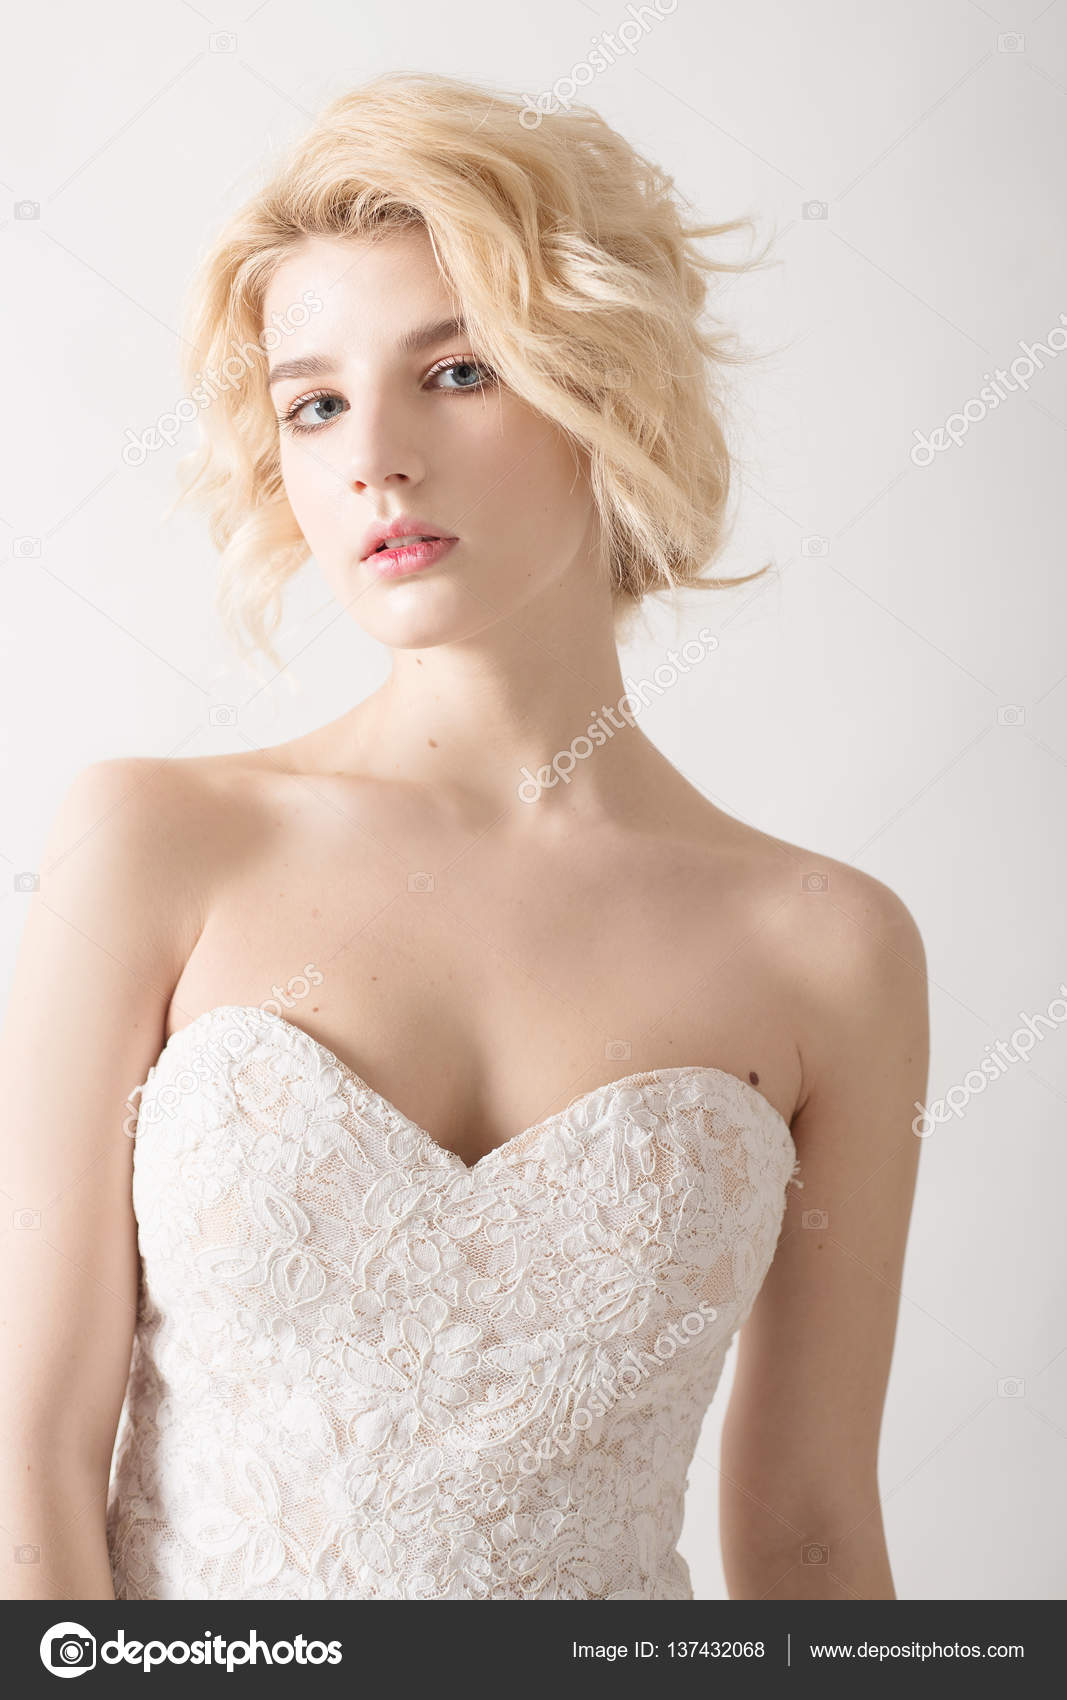 Blonde Hair Blue Eyes Makeup Woman With White Hair In A